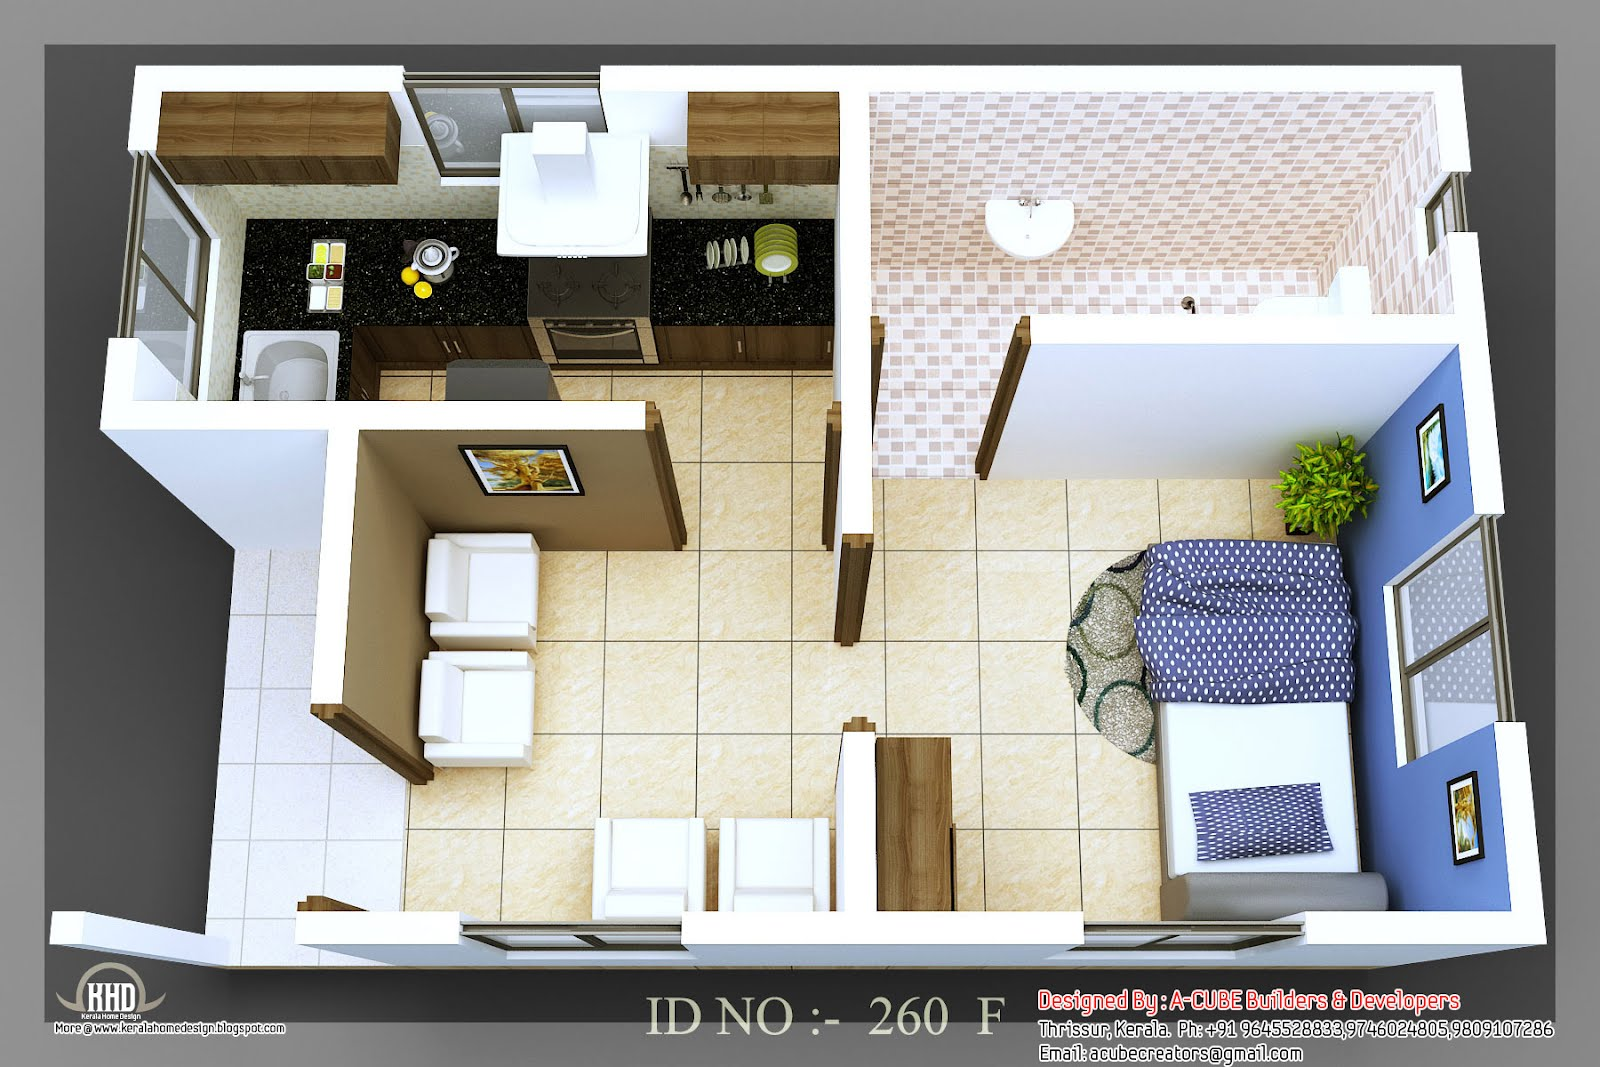 3d isometric views of small house plans home appliance for Small house plans and designs